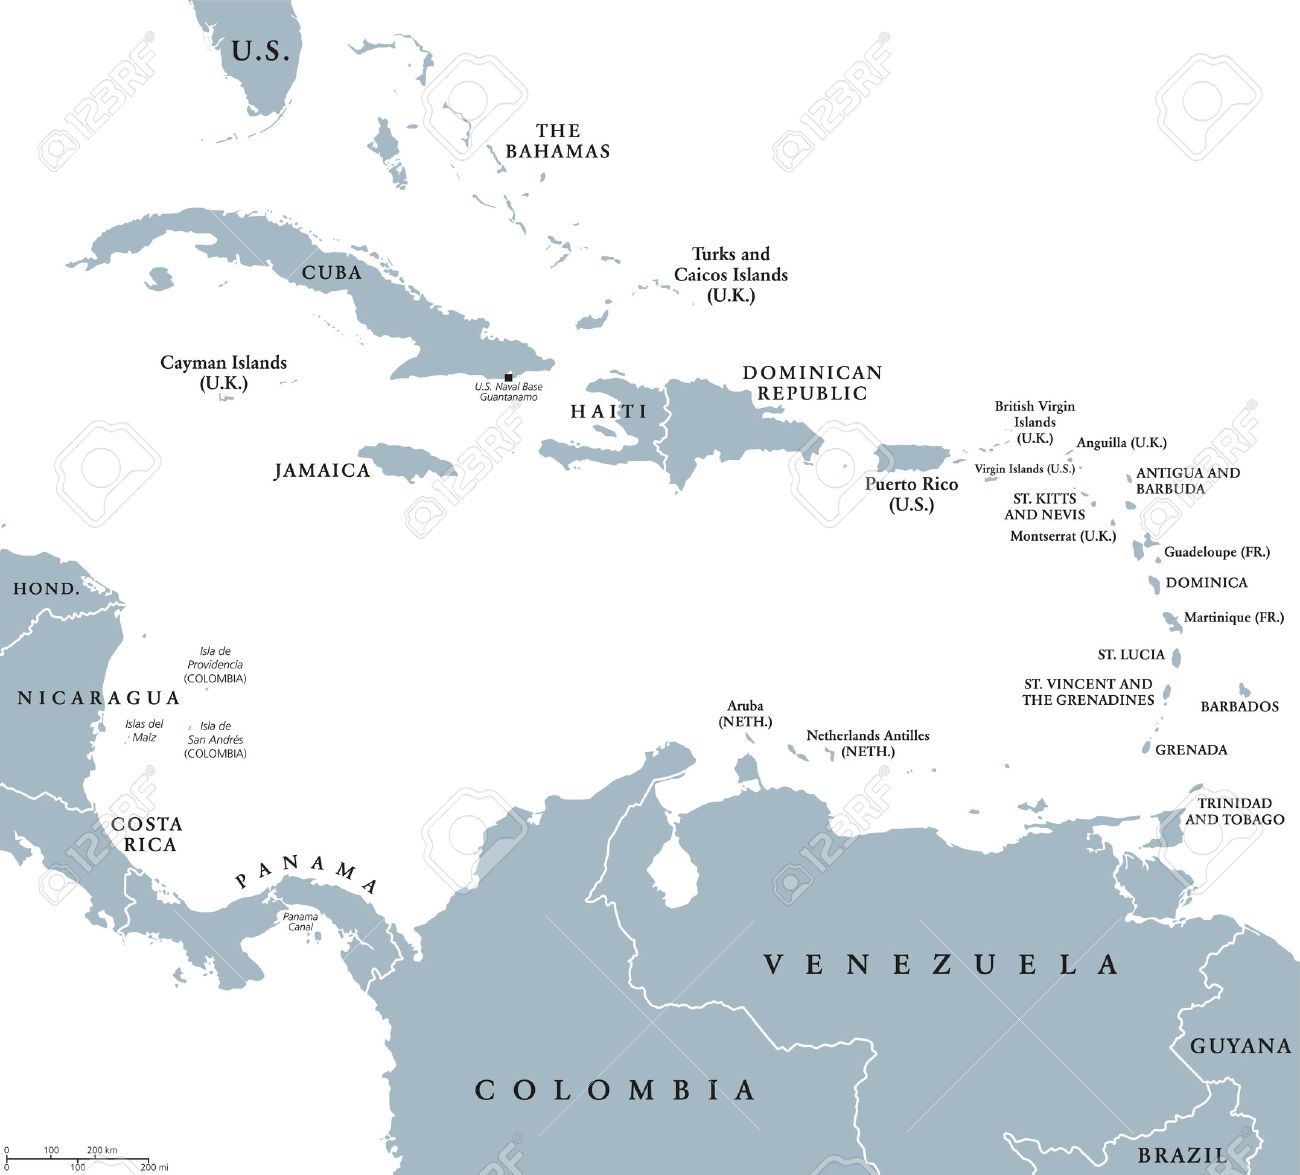 The Caribbean countries political map with national borders...